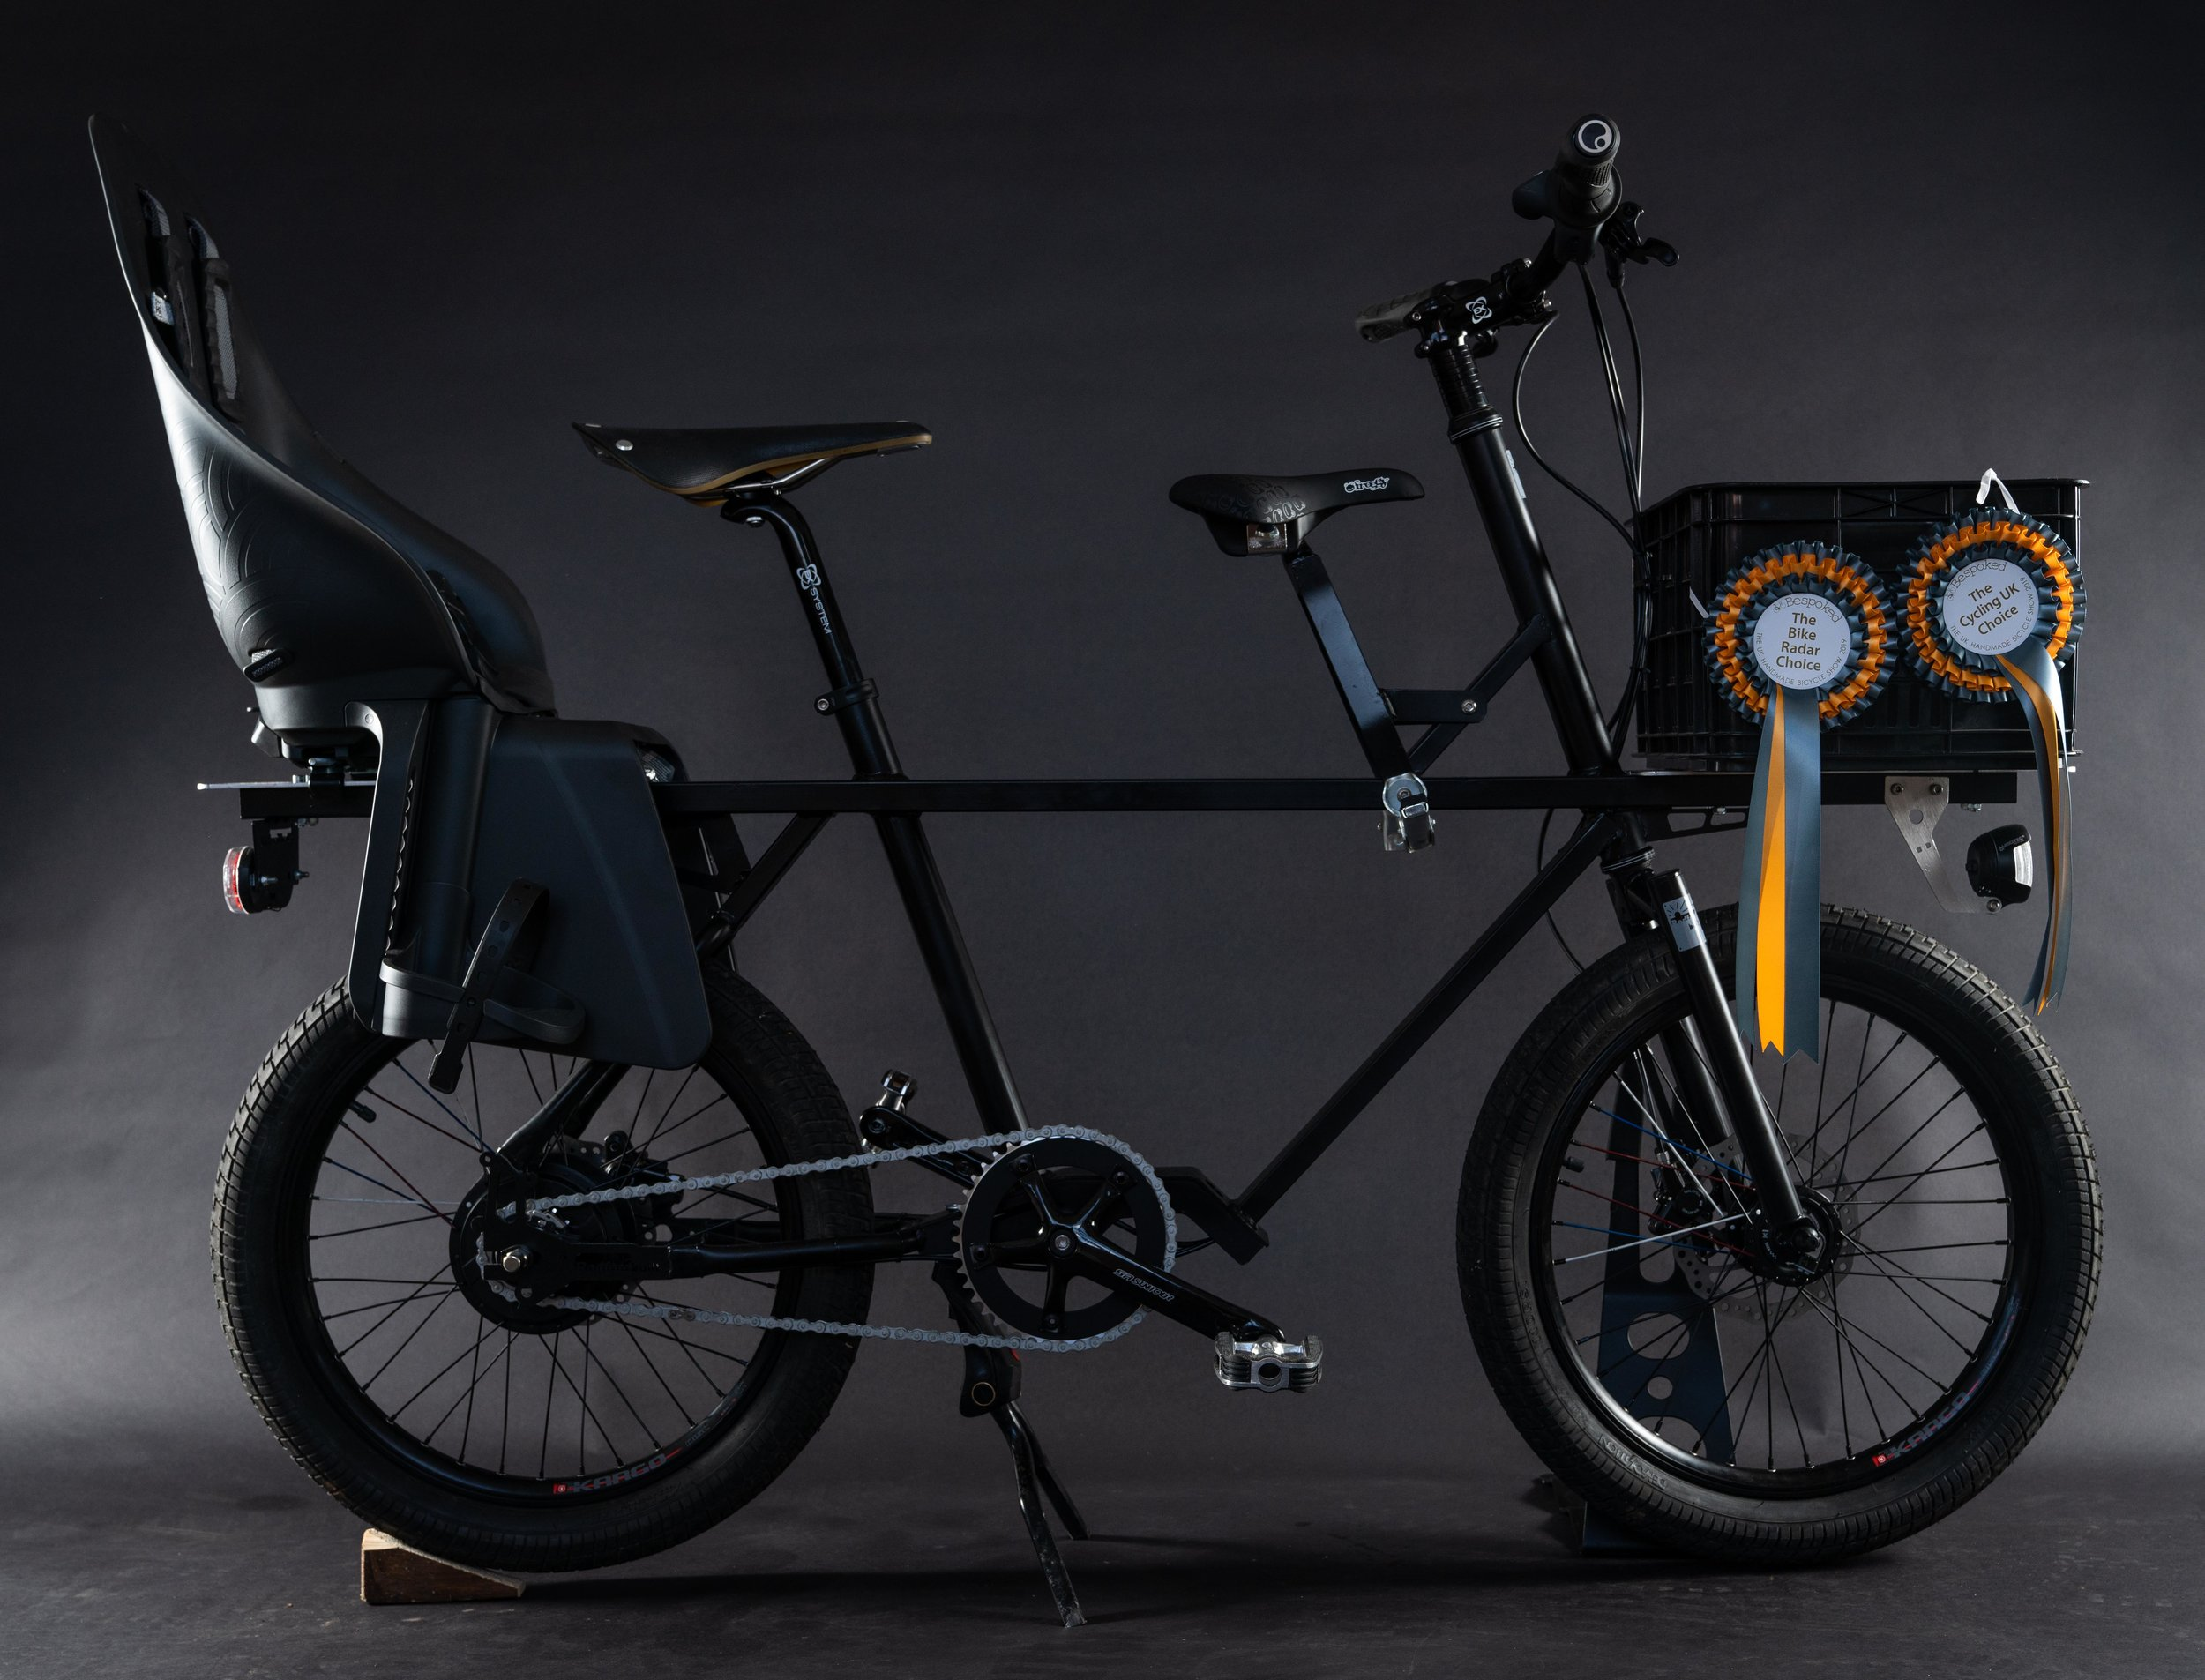 Big Billy - The Urban bike small enough to fit into your life but big enough to change it.